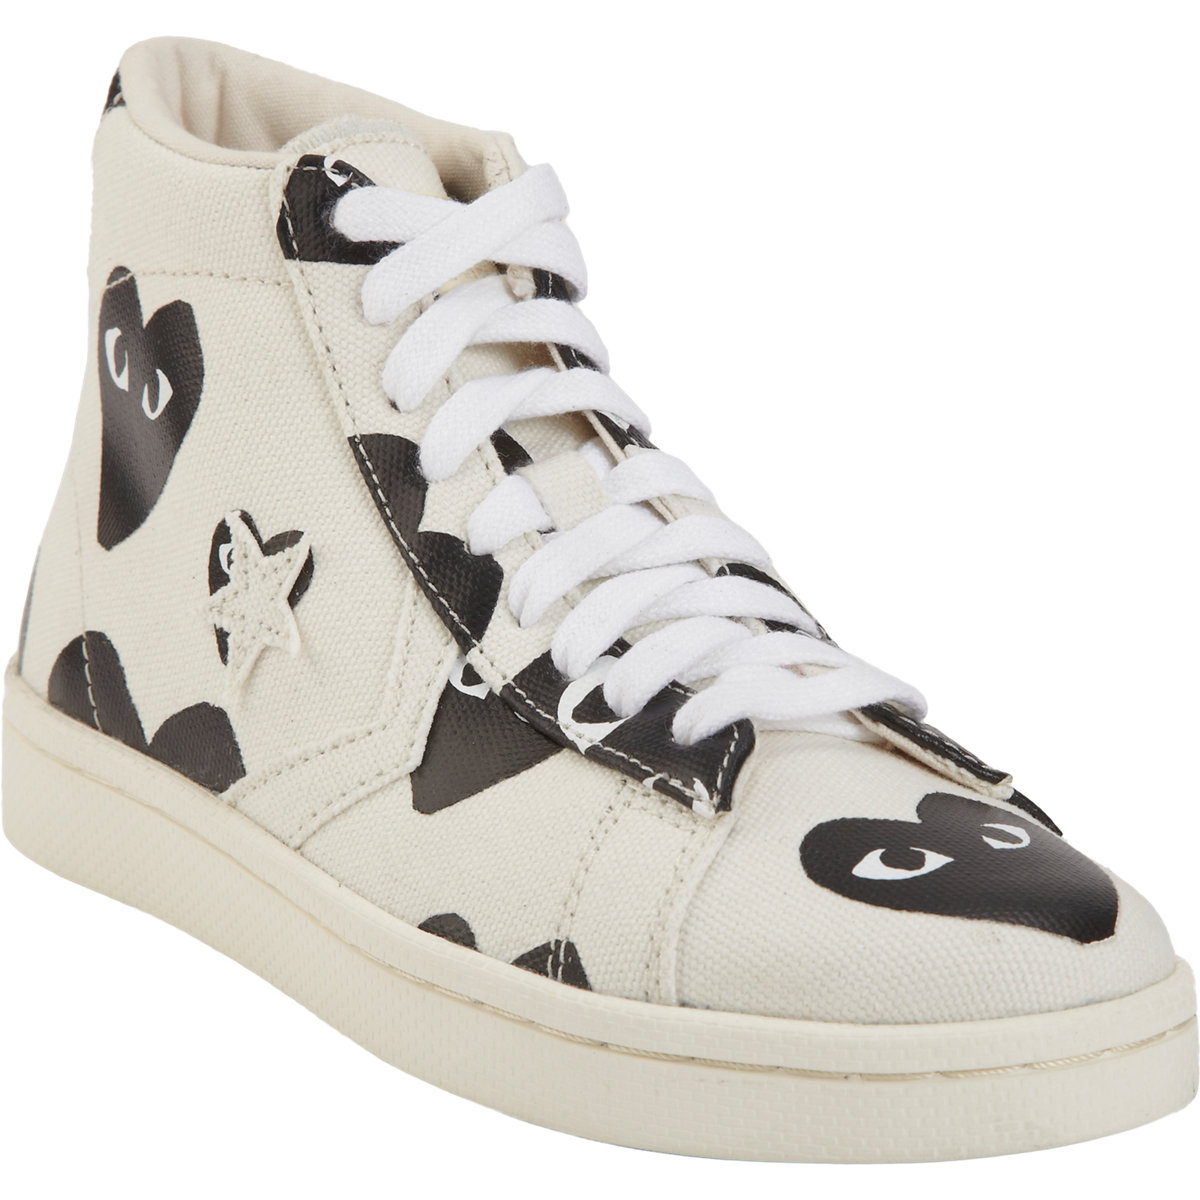 play comme des gar ons play pro canvas and leather high top sneakers in white lyst. Black Bedroom Furniture Sets. Home Design Ideas